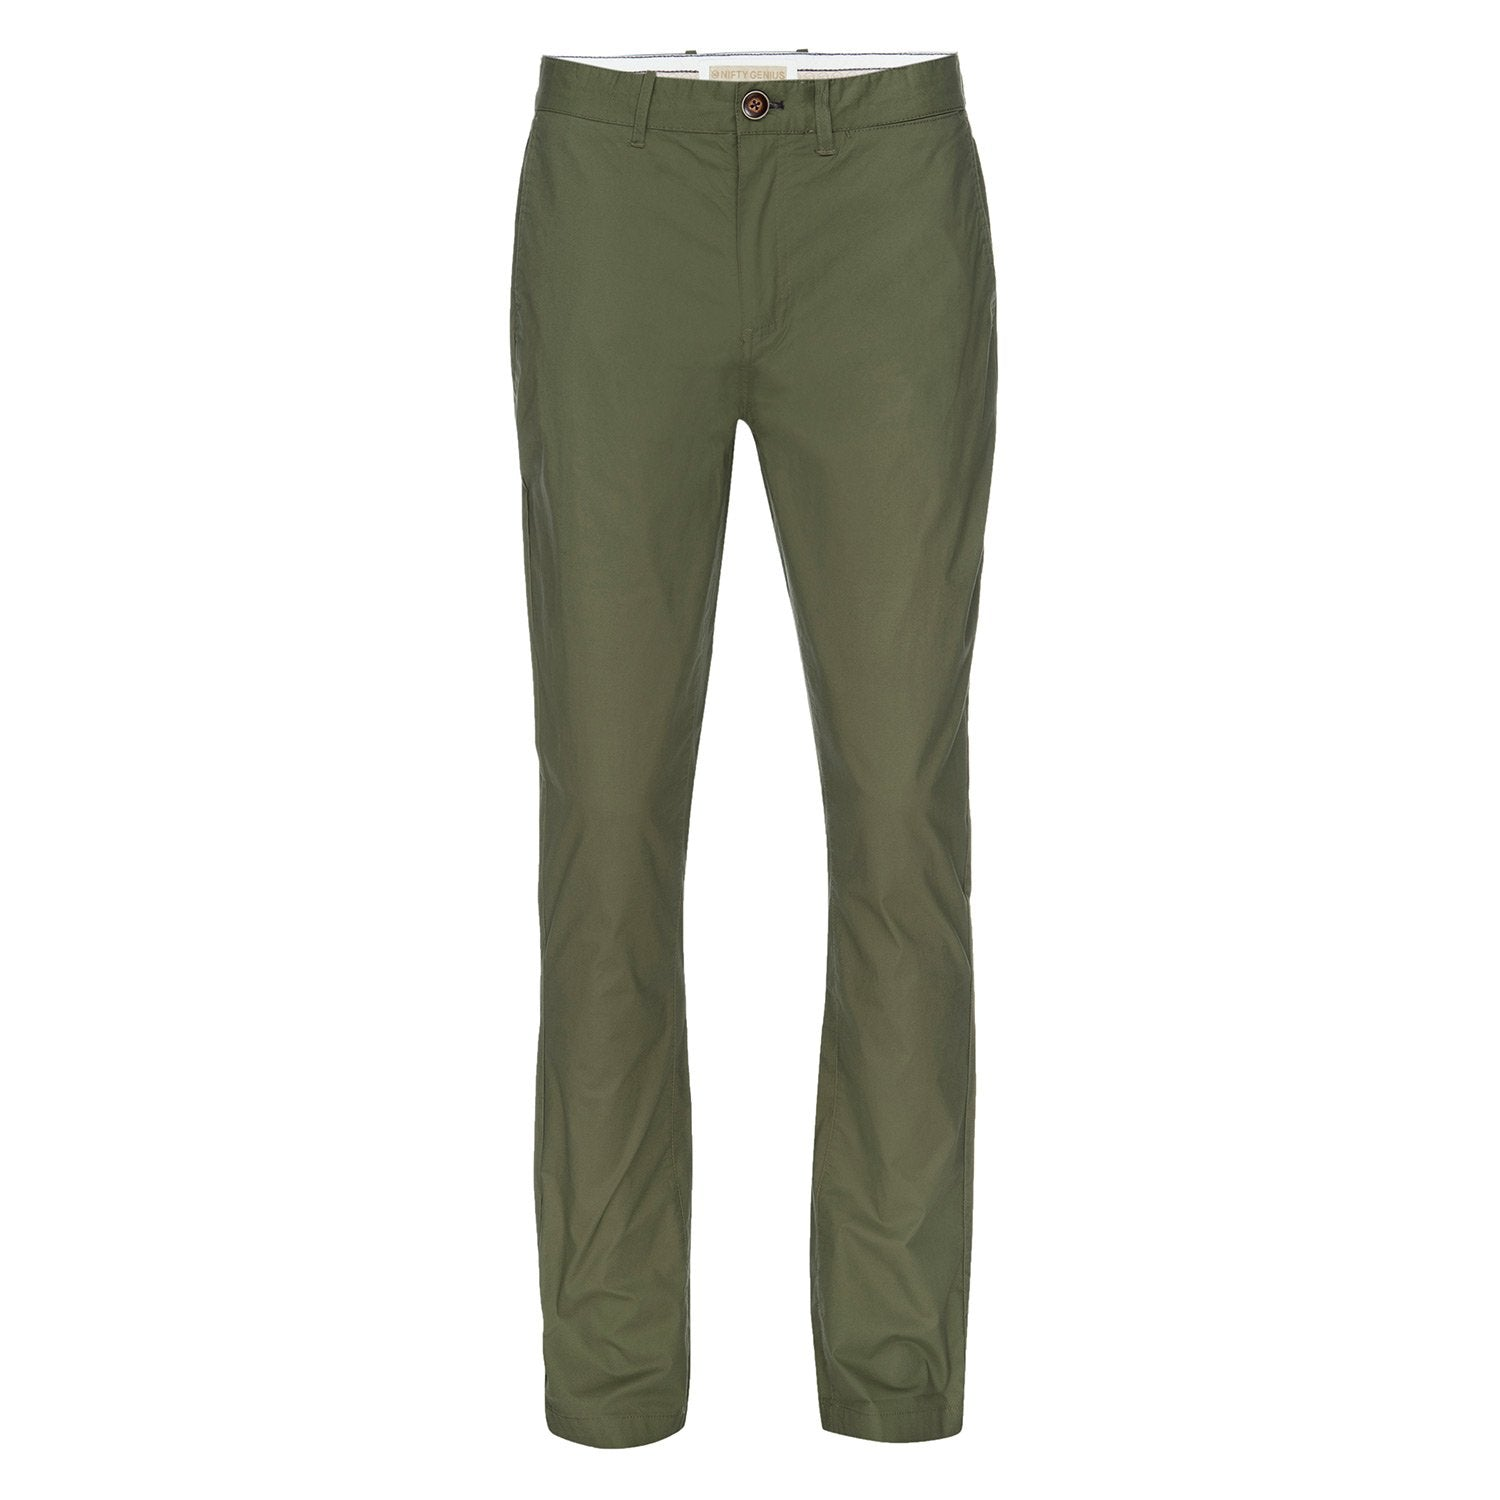 J.P. Stretch Typewriter Cloth Chino in Olive